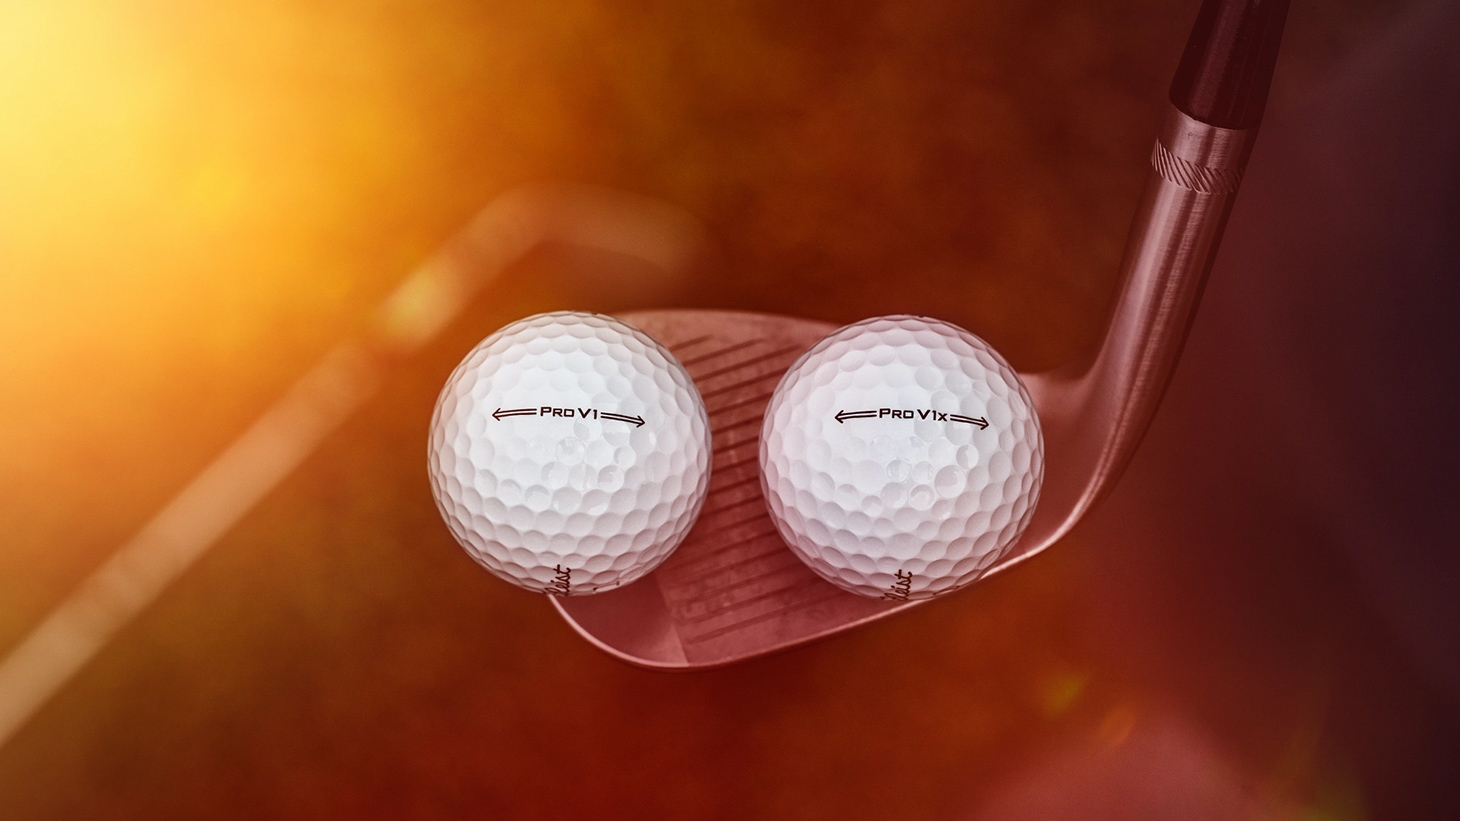 The softer urethane cover on both the new Pro V1 and Pro V1x golf balls delivers more spin for even greater greenside control